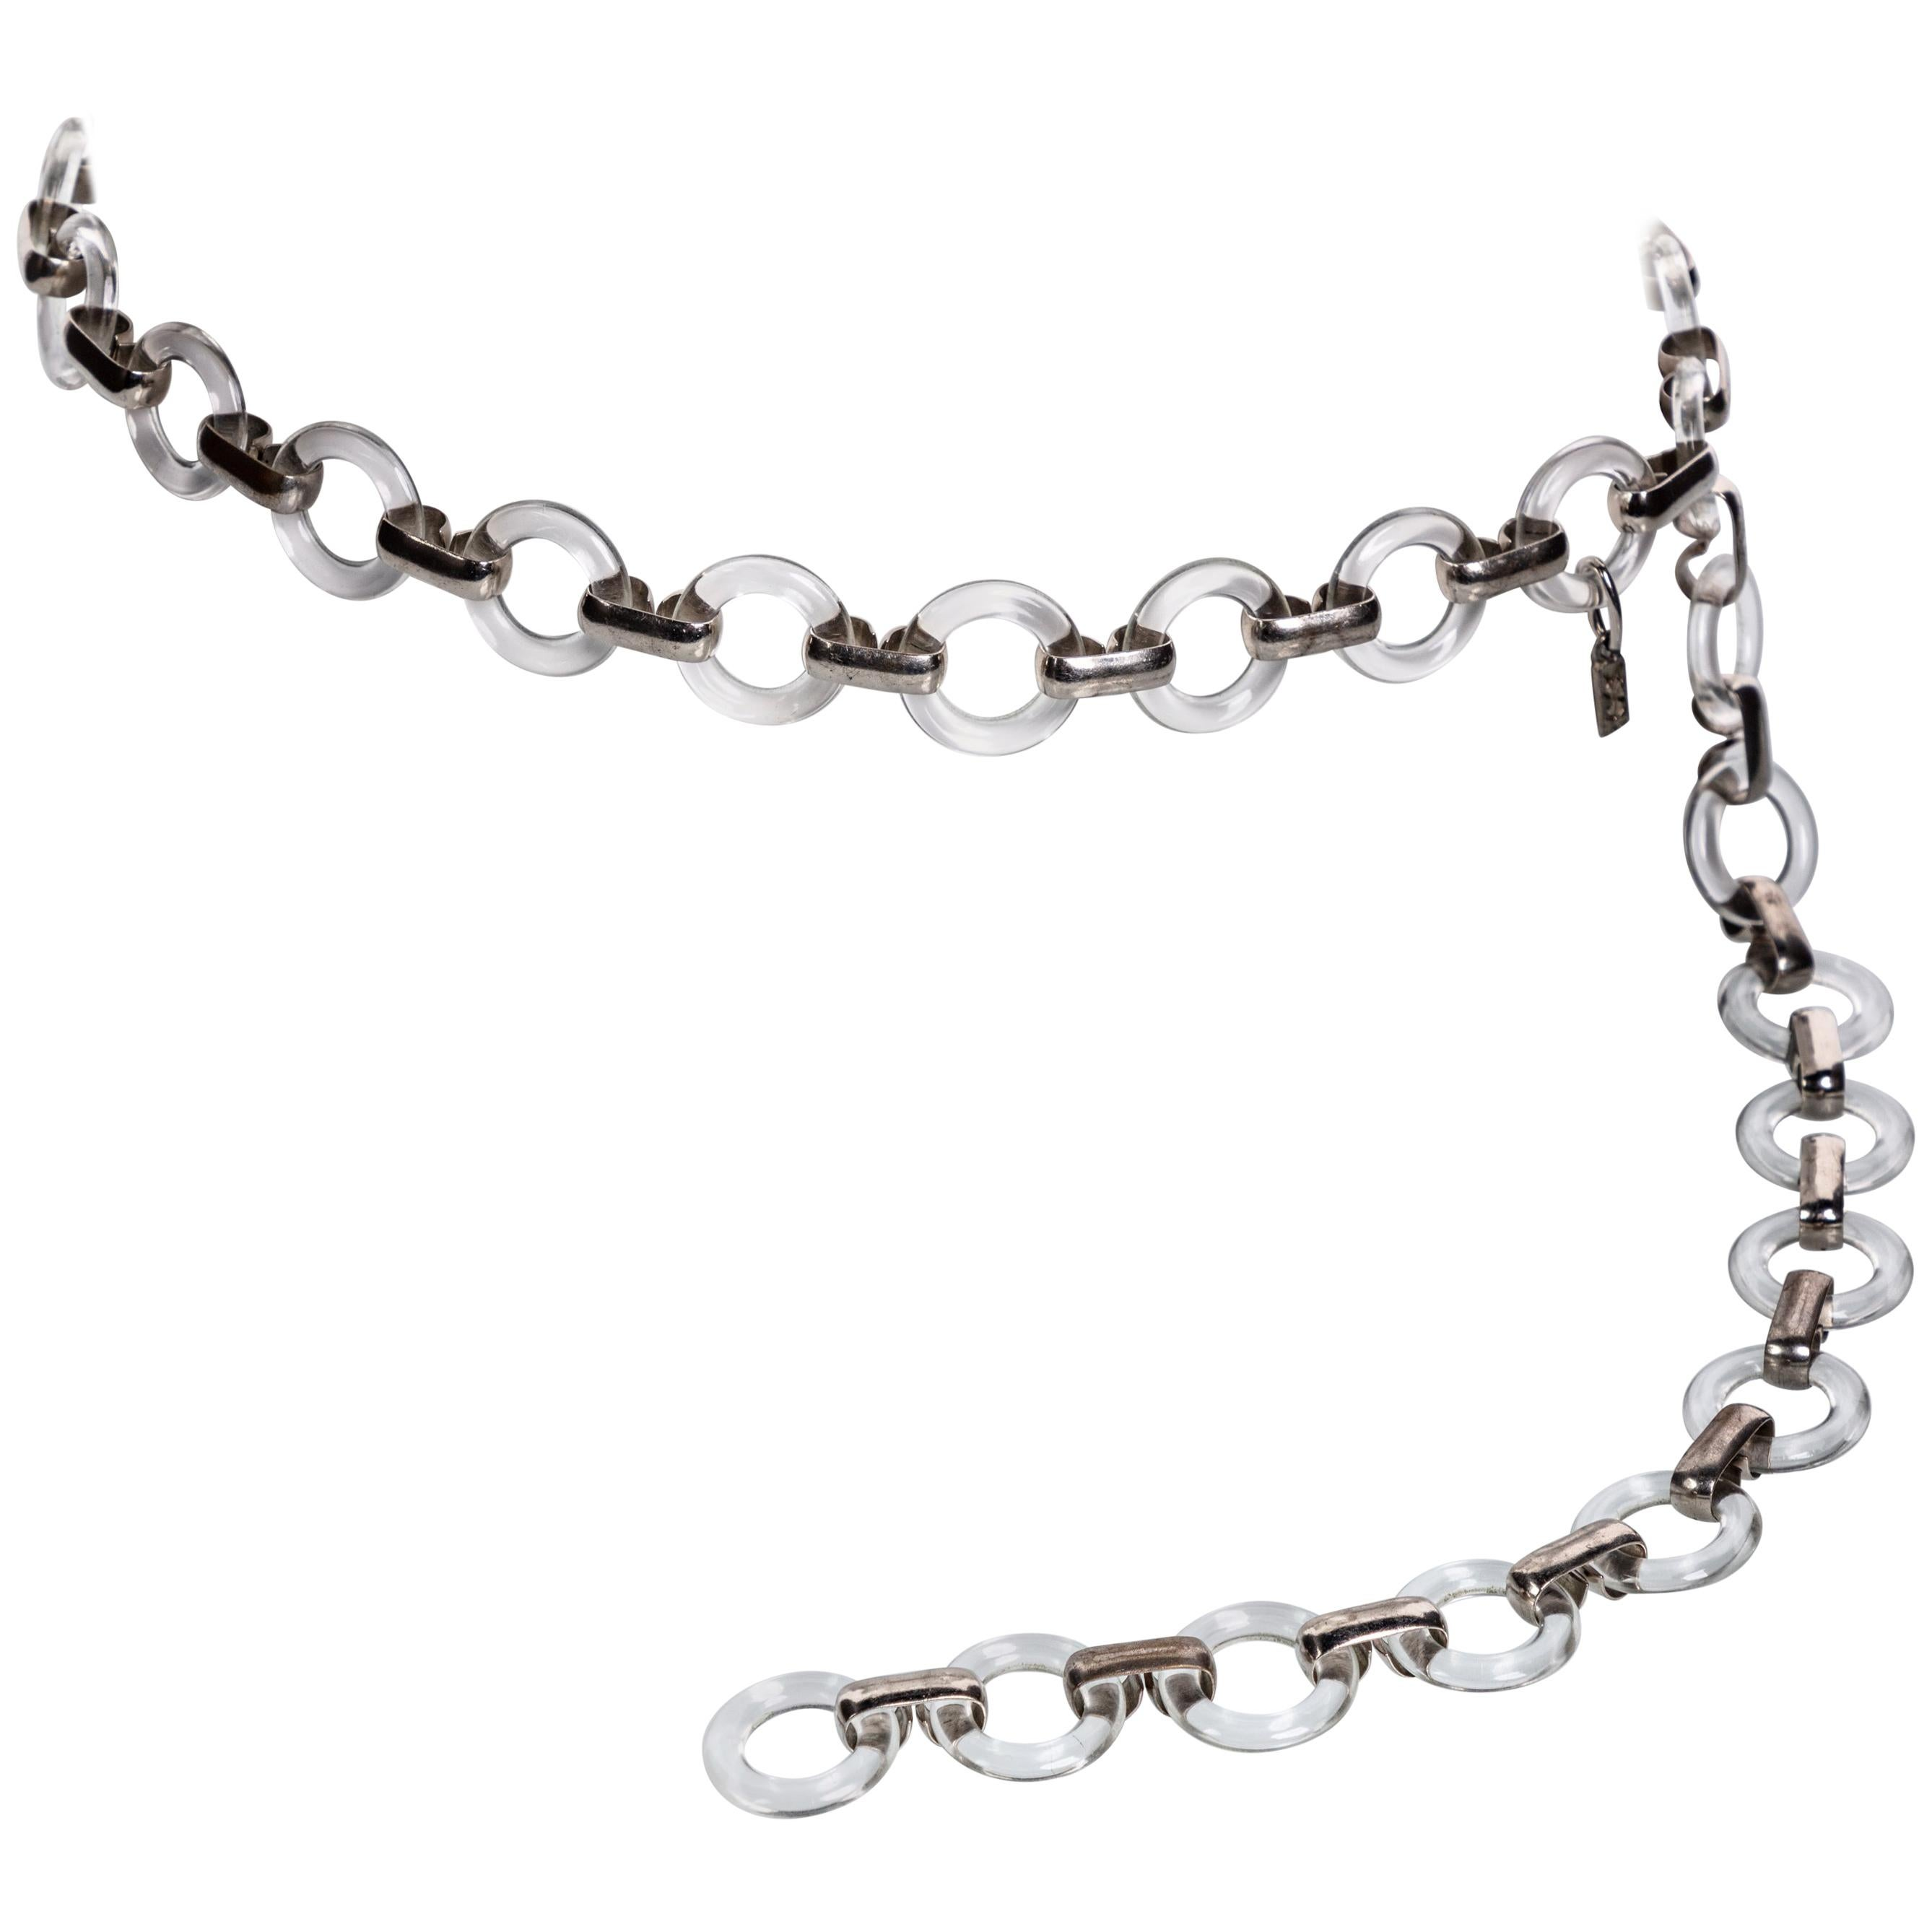 d72c85b14ee Vintage Yves Saint Laurent Lucite Rings Silver Link Belt Necklace For Sale  at 1stdibs